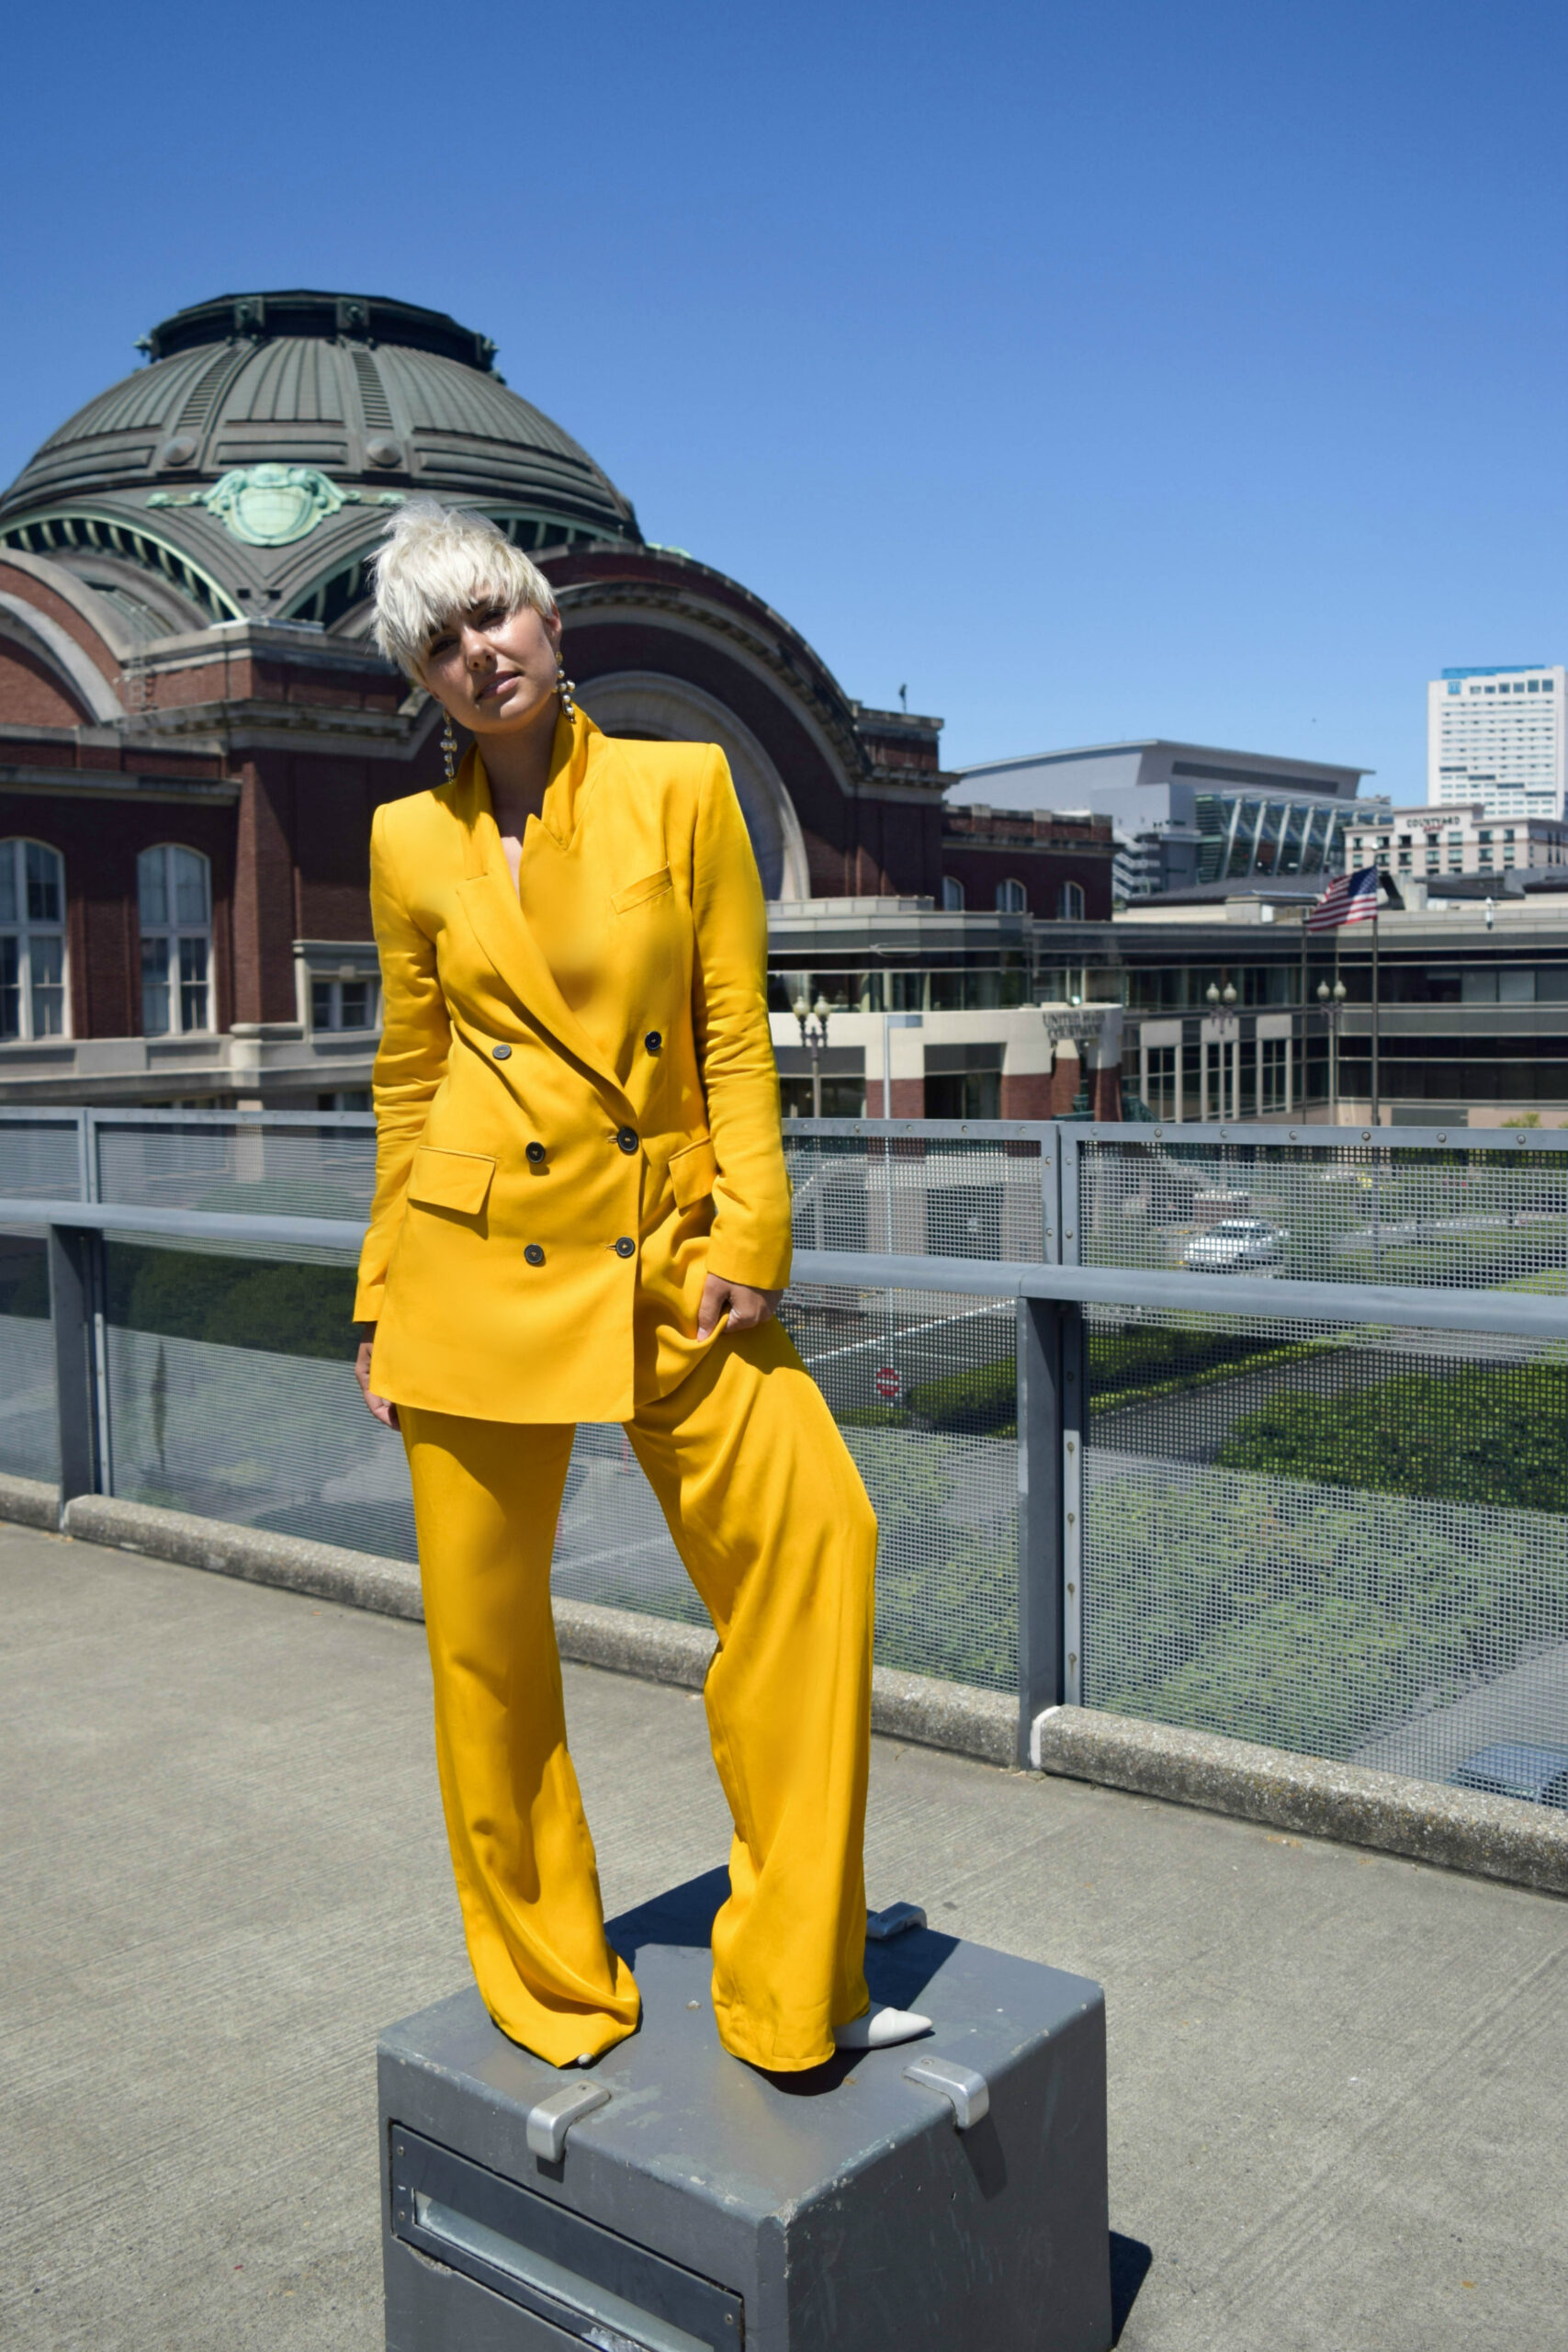 Fashion Blogger BloggerNotBillionaire Wears Fall's Hottest Trend, the Full Suit